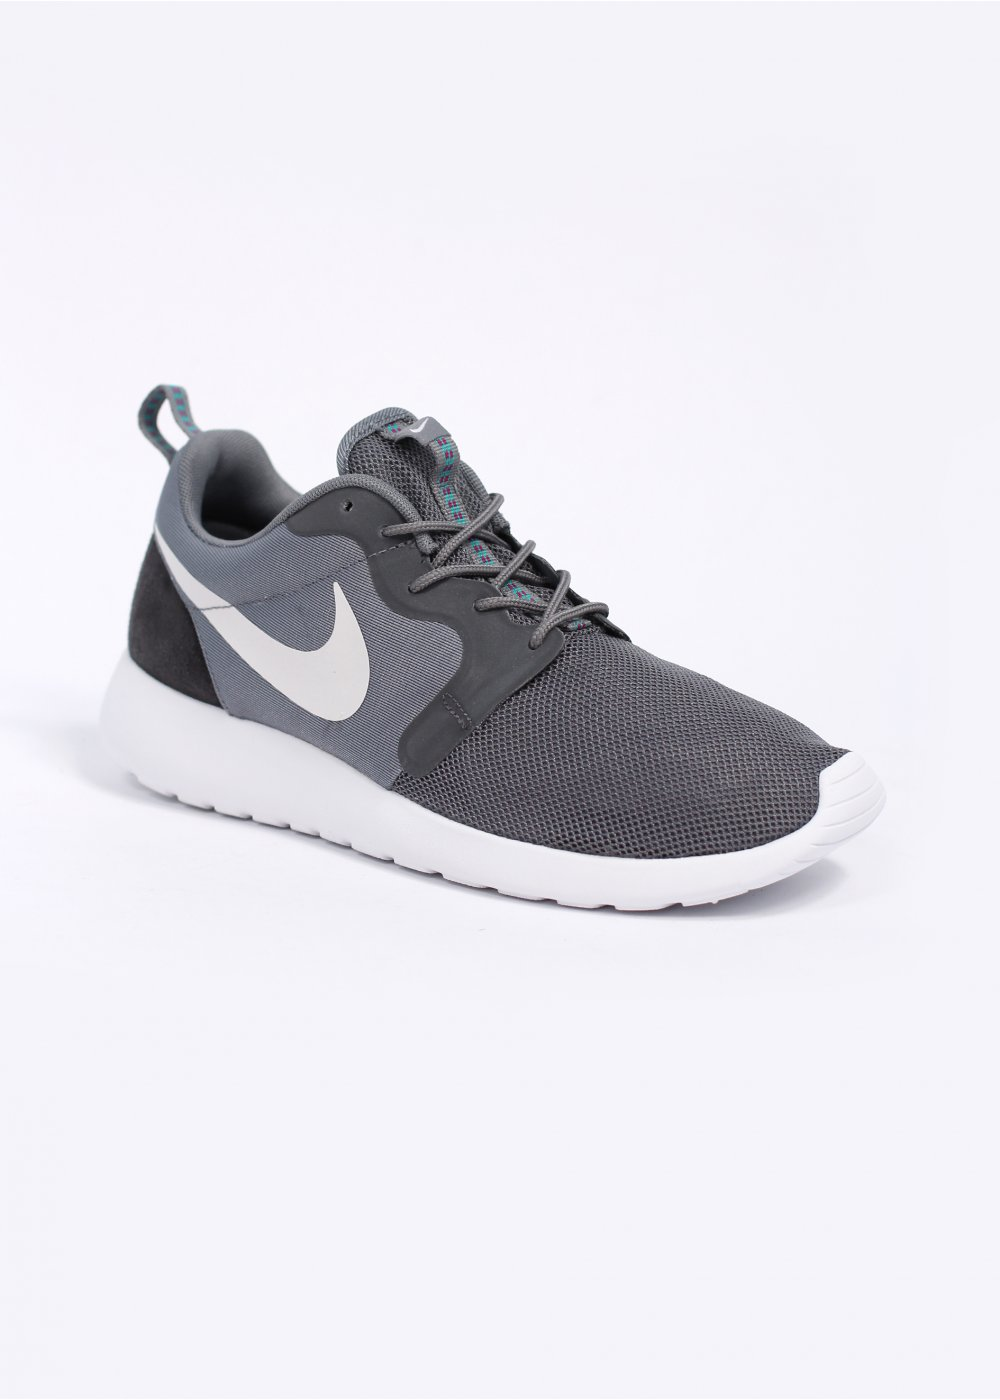 brand new e57f1 6a39b Rosherun Hyperfuse Trainers - Cool Grey  White